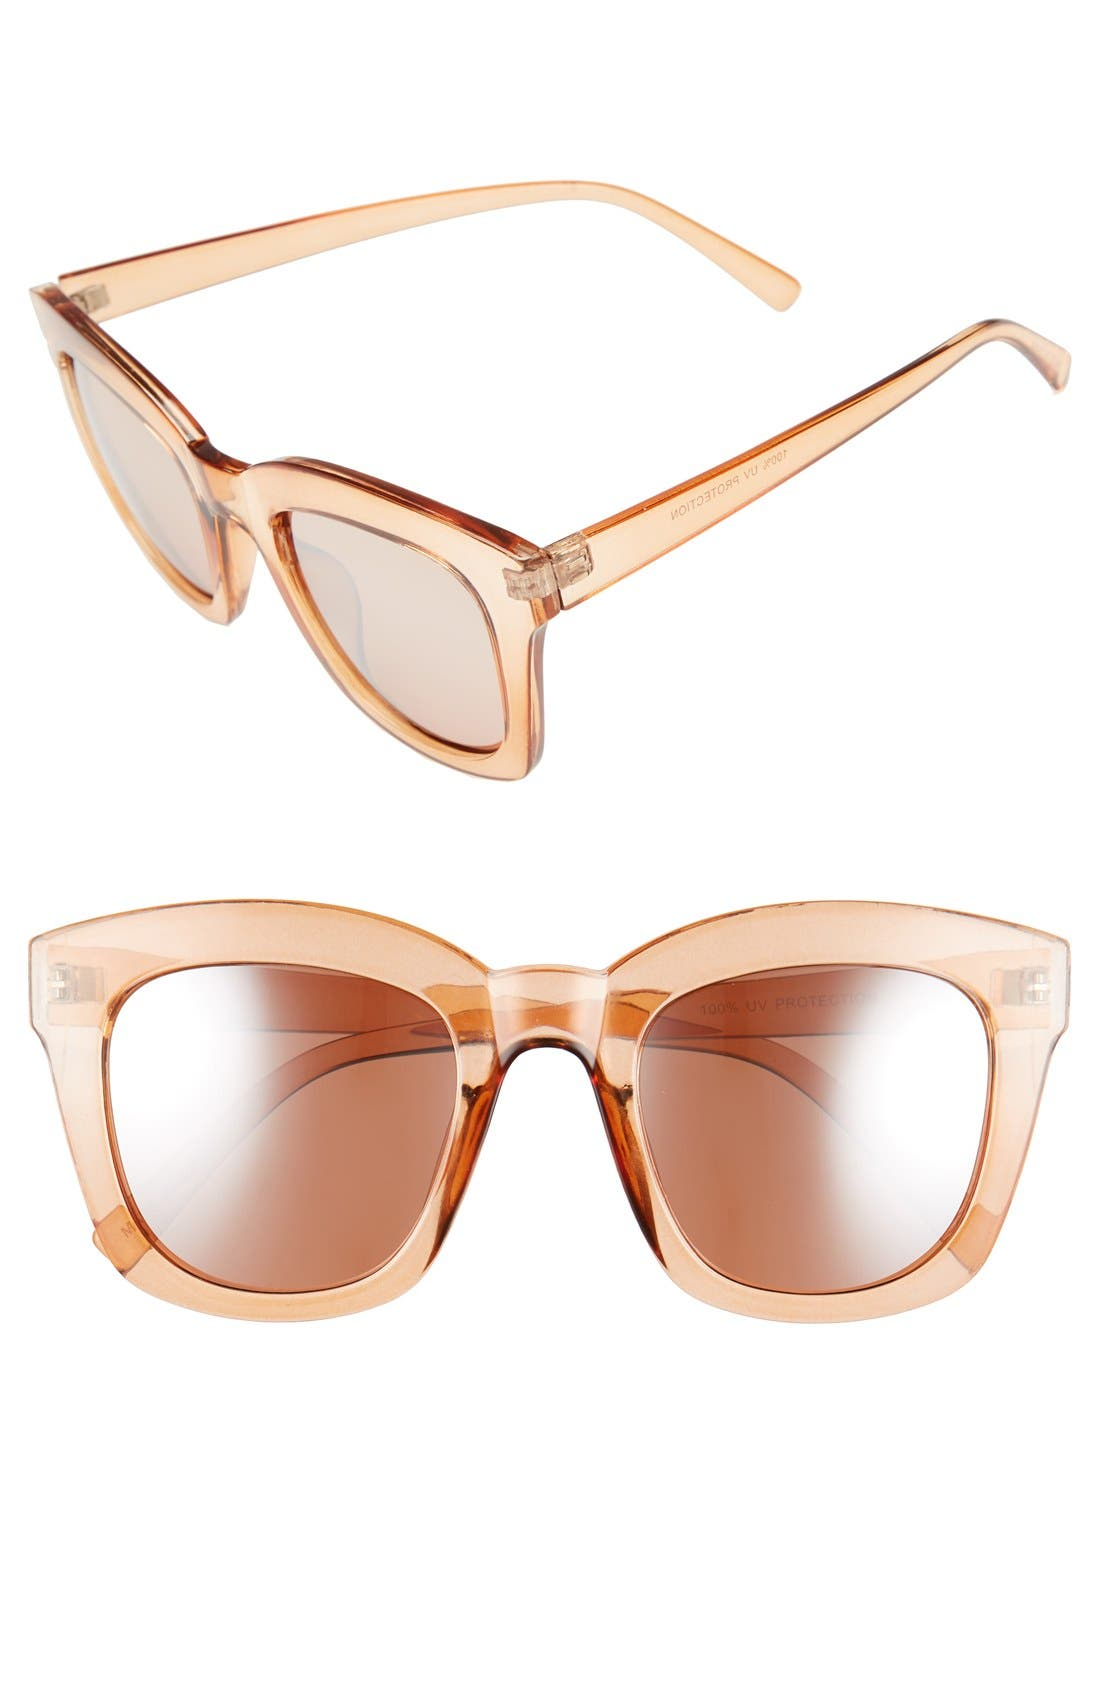 Alternate Image 1 Selected - BP. 50mm Mirror Square Sunglasses